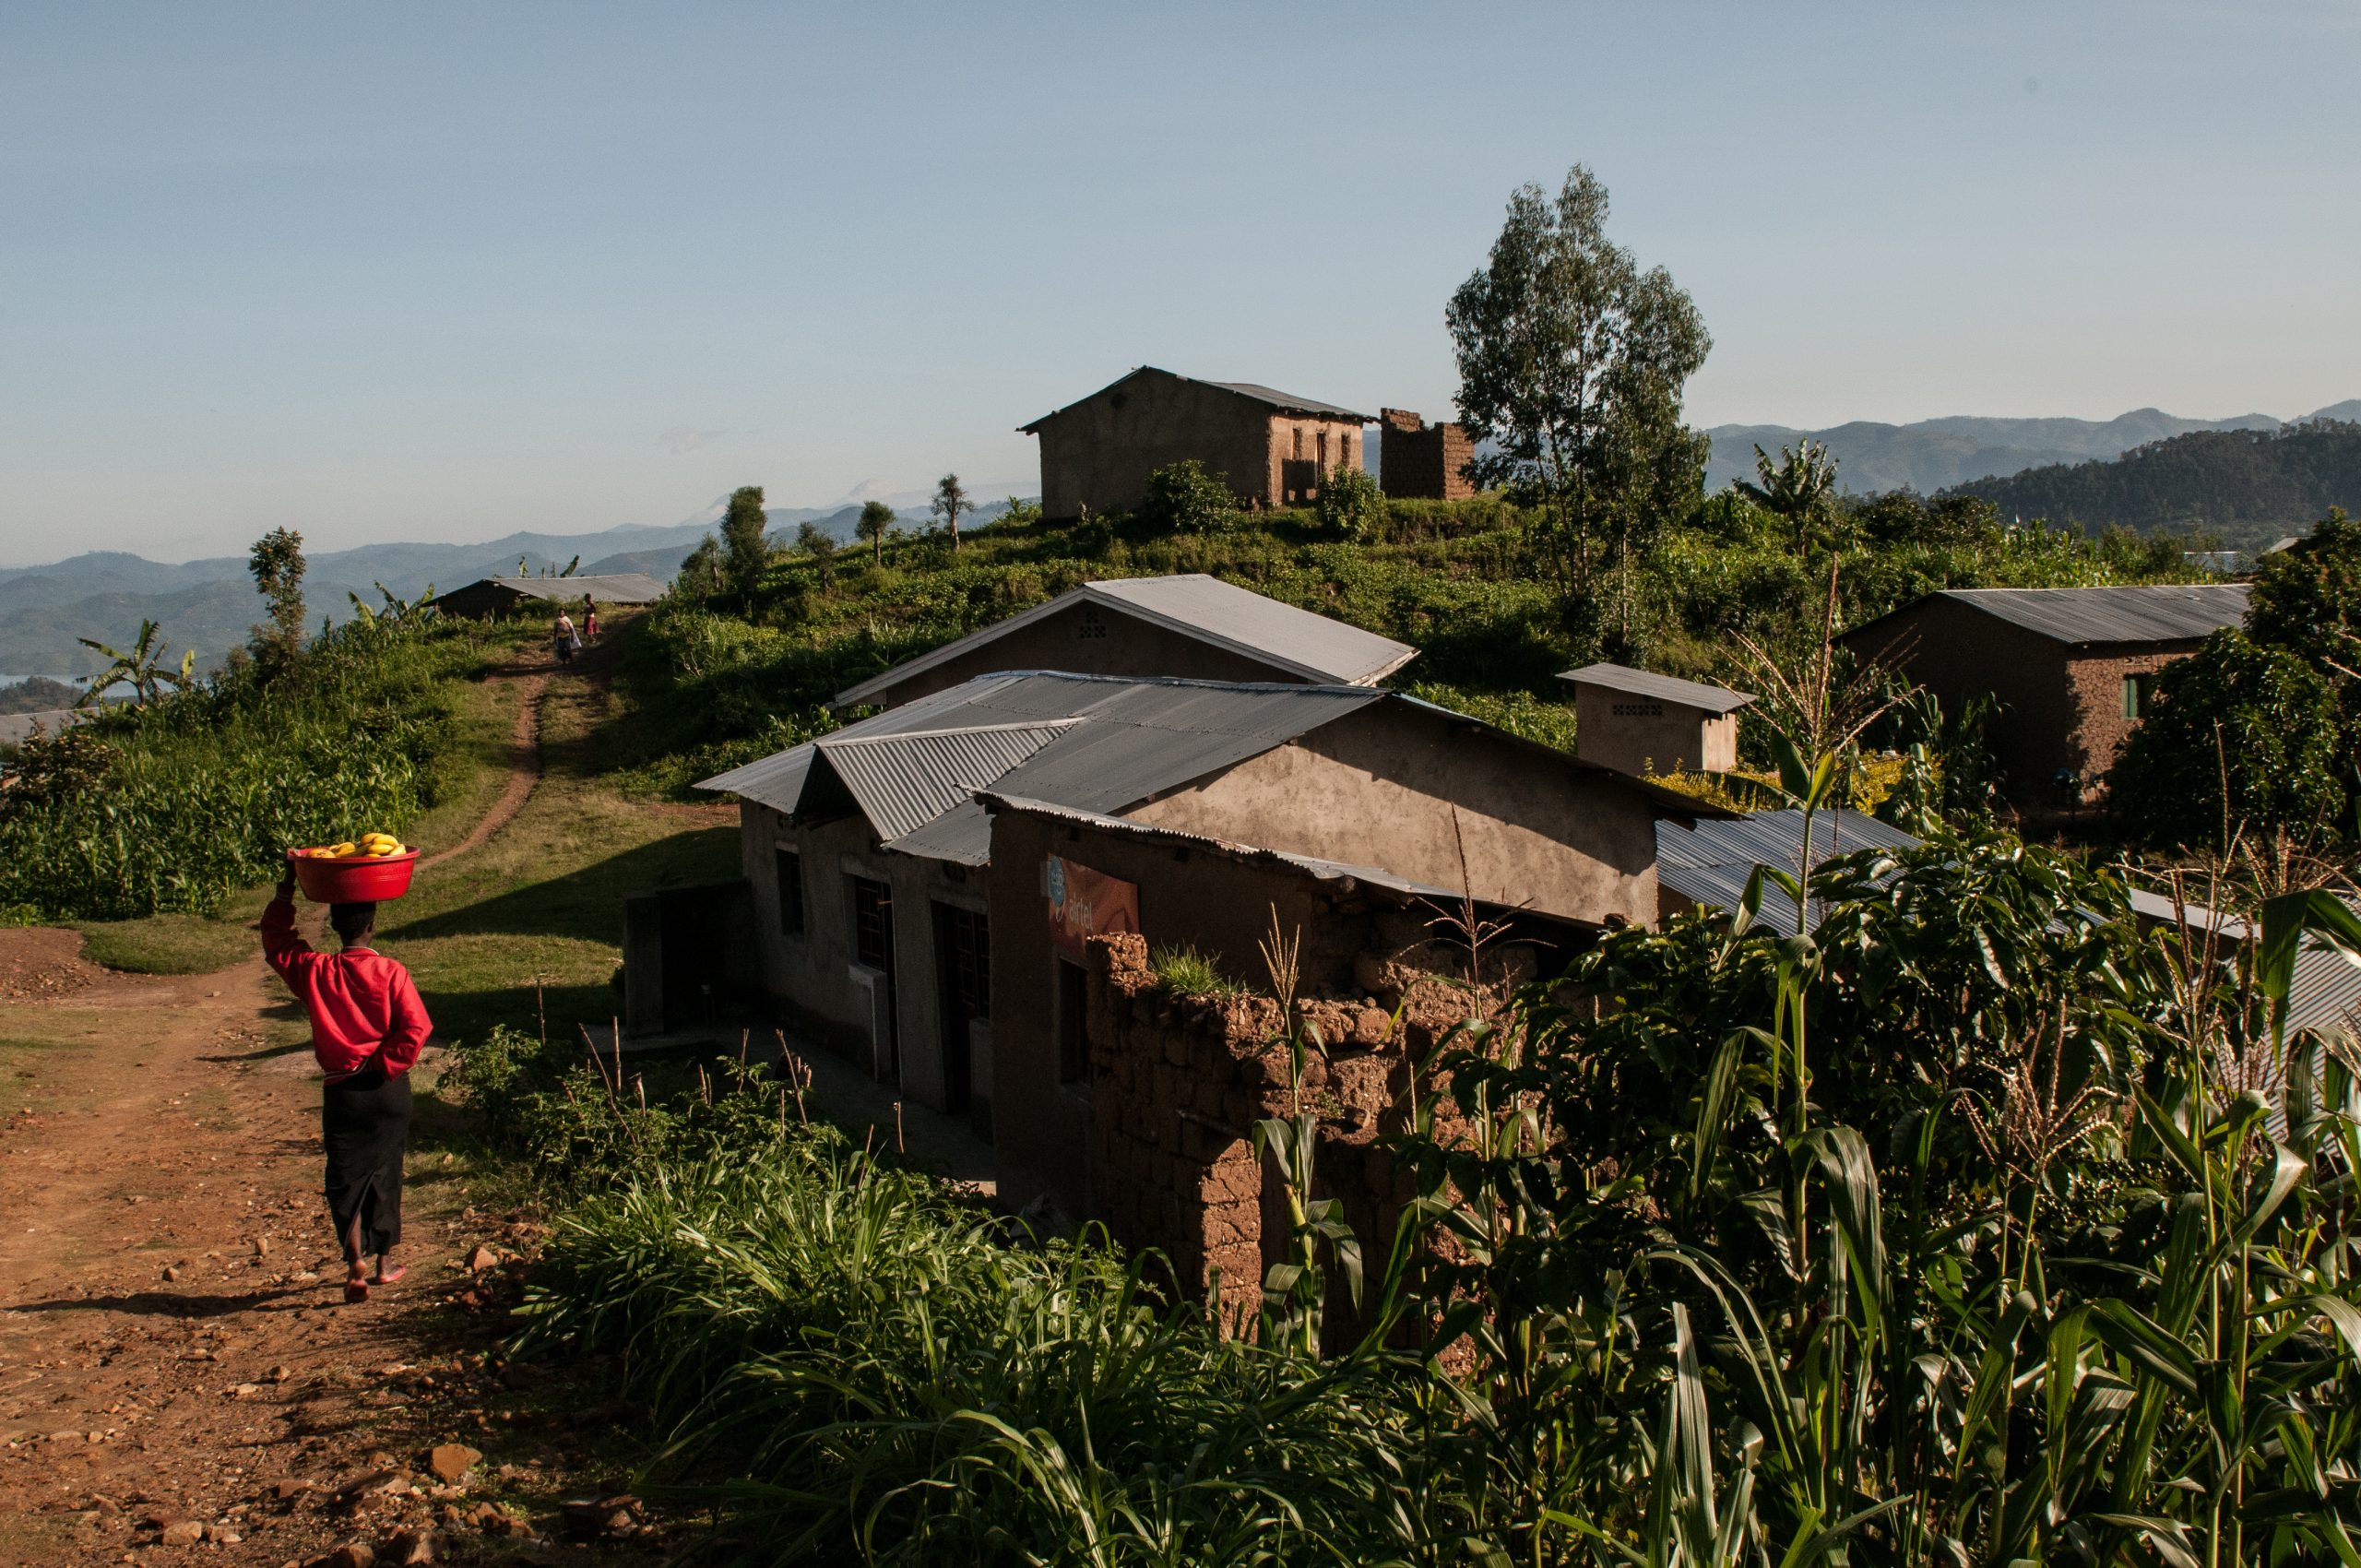 Getting Smarter on Subsidy: The role of grant funding in smallholder finance